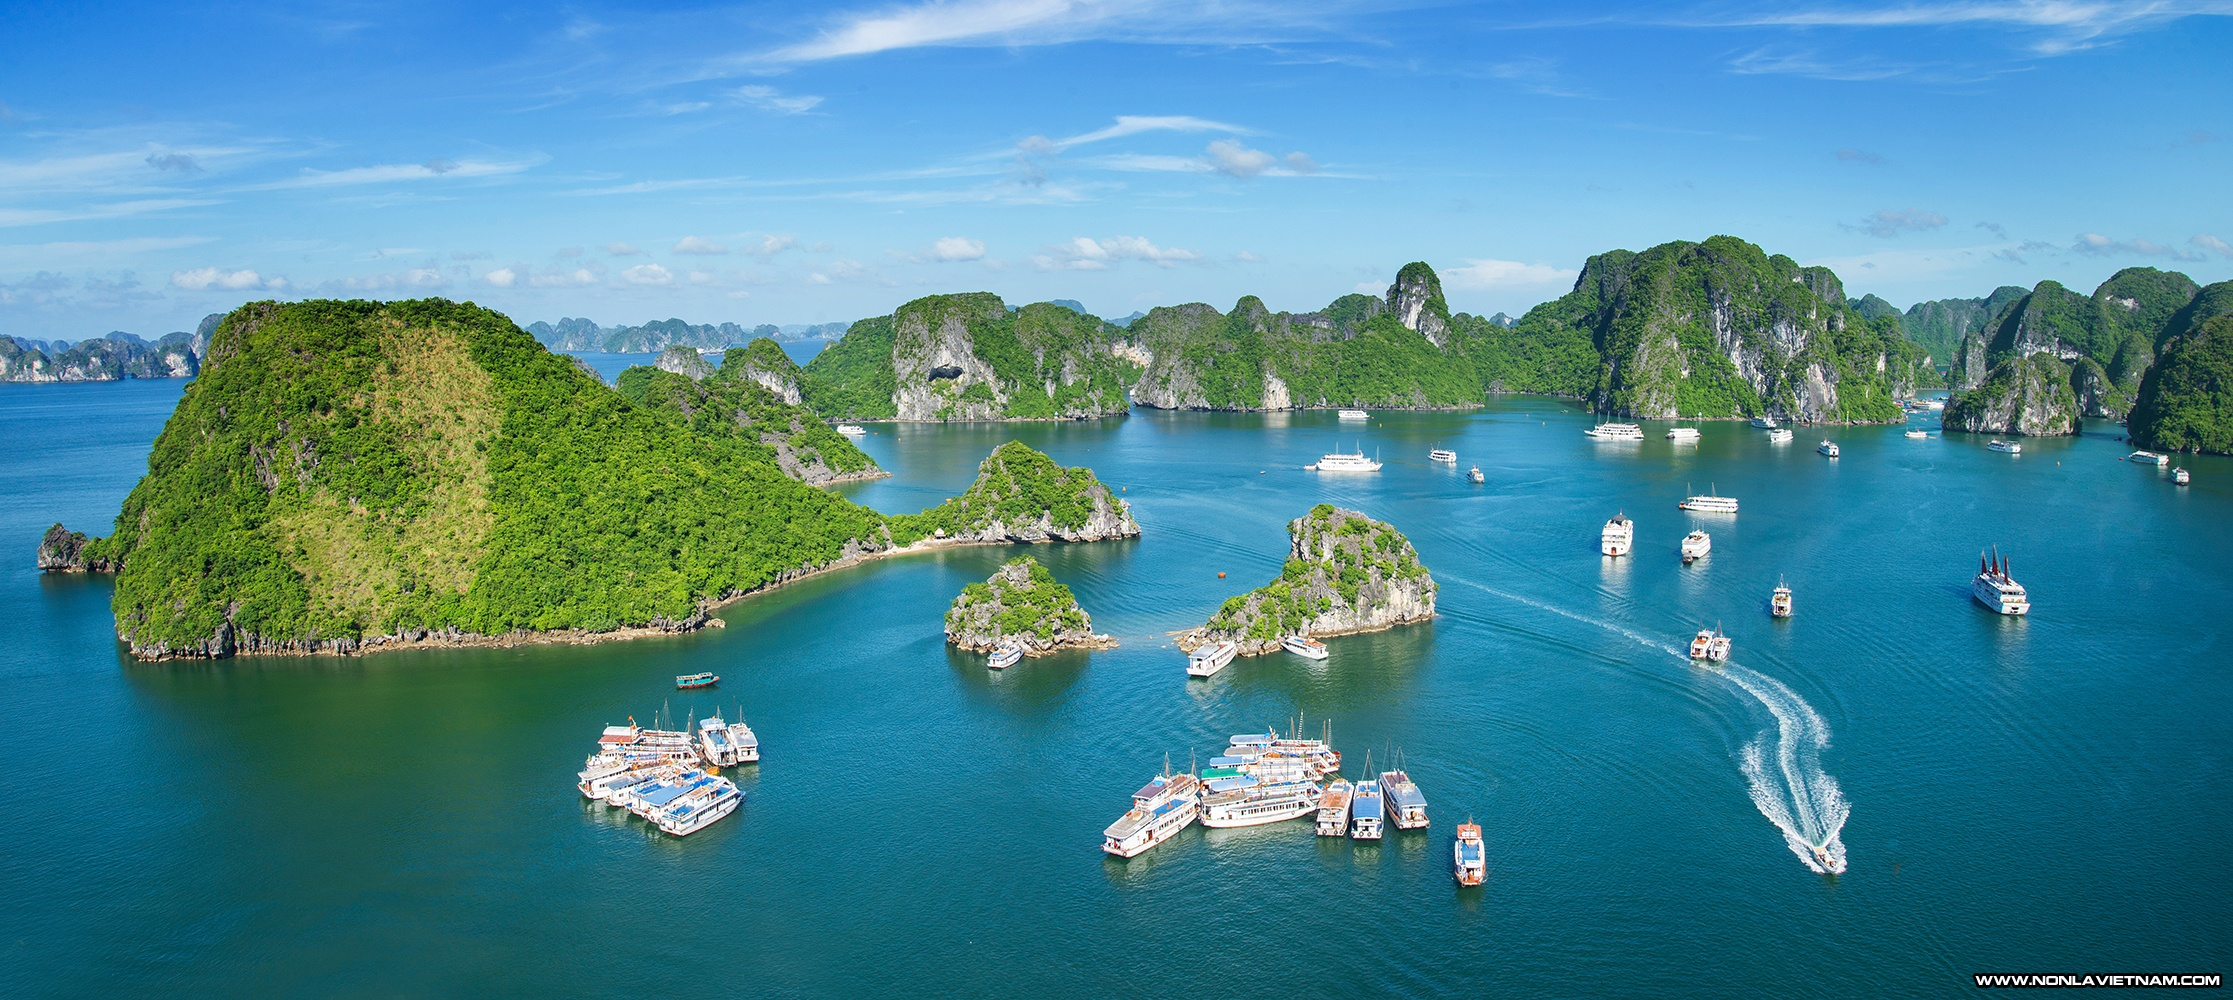 PACKAGE 4 DAYS 3 NIGHTS - HANOI - HALONG - HANOI